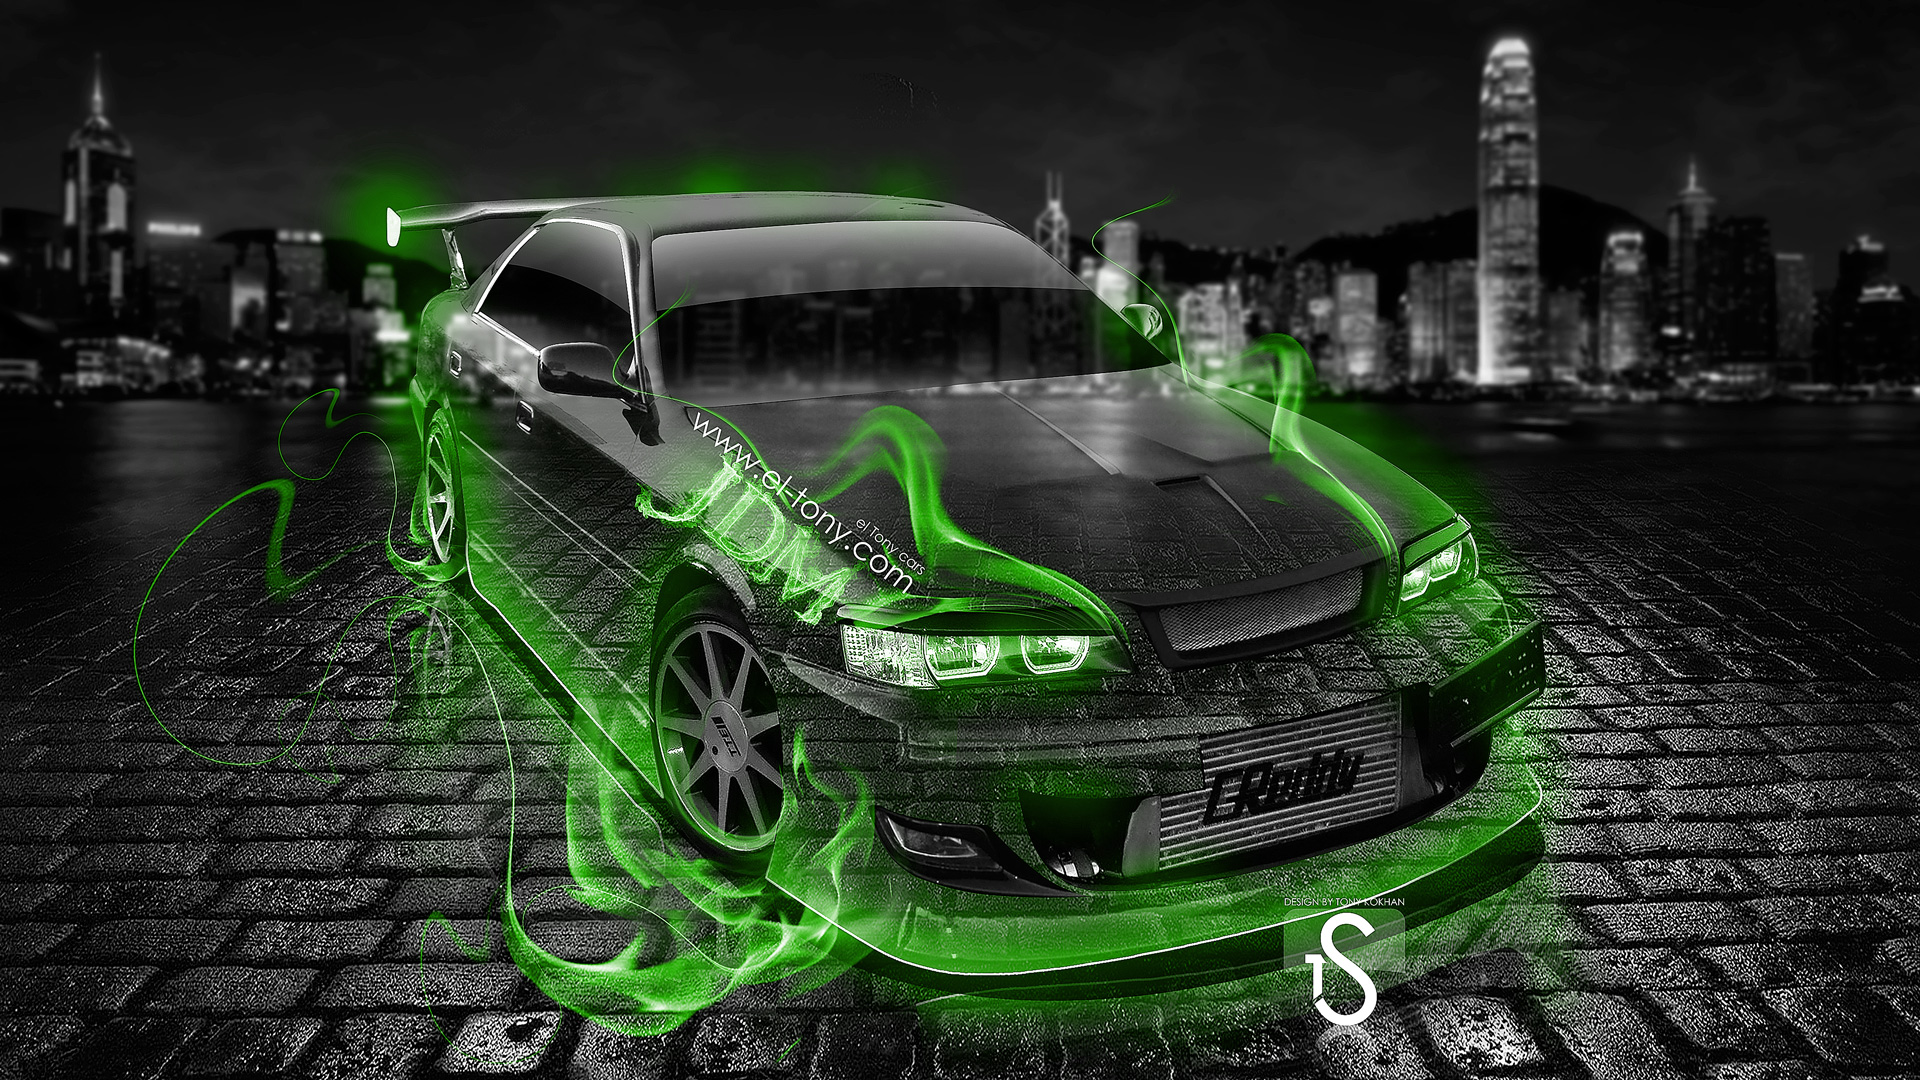 Superbe Toyota Chaser Tuning JZX100 JDM Green Fire Crystal  ...